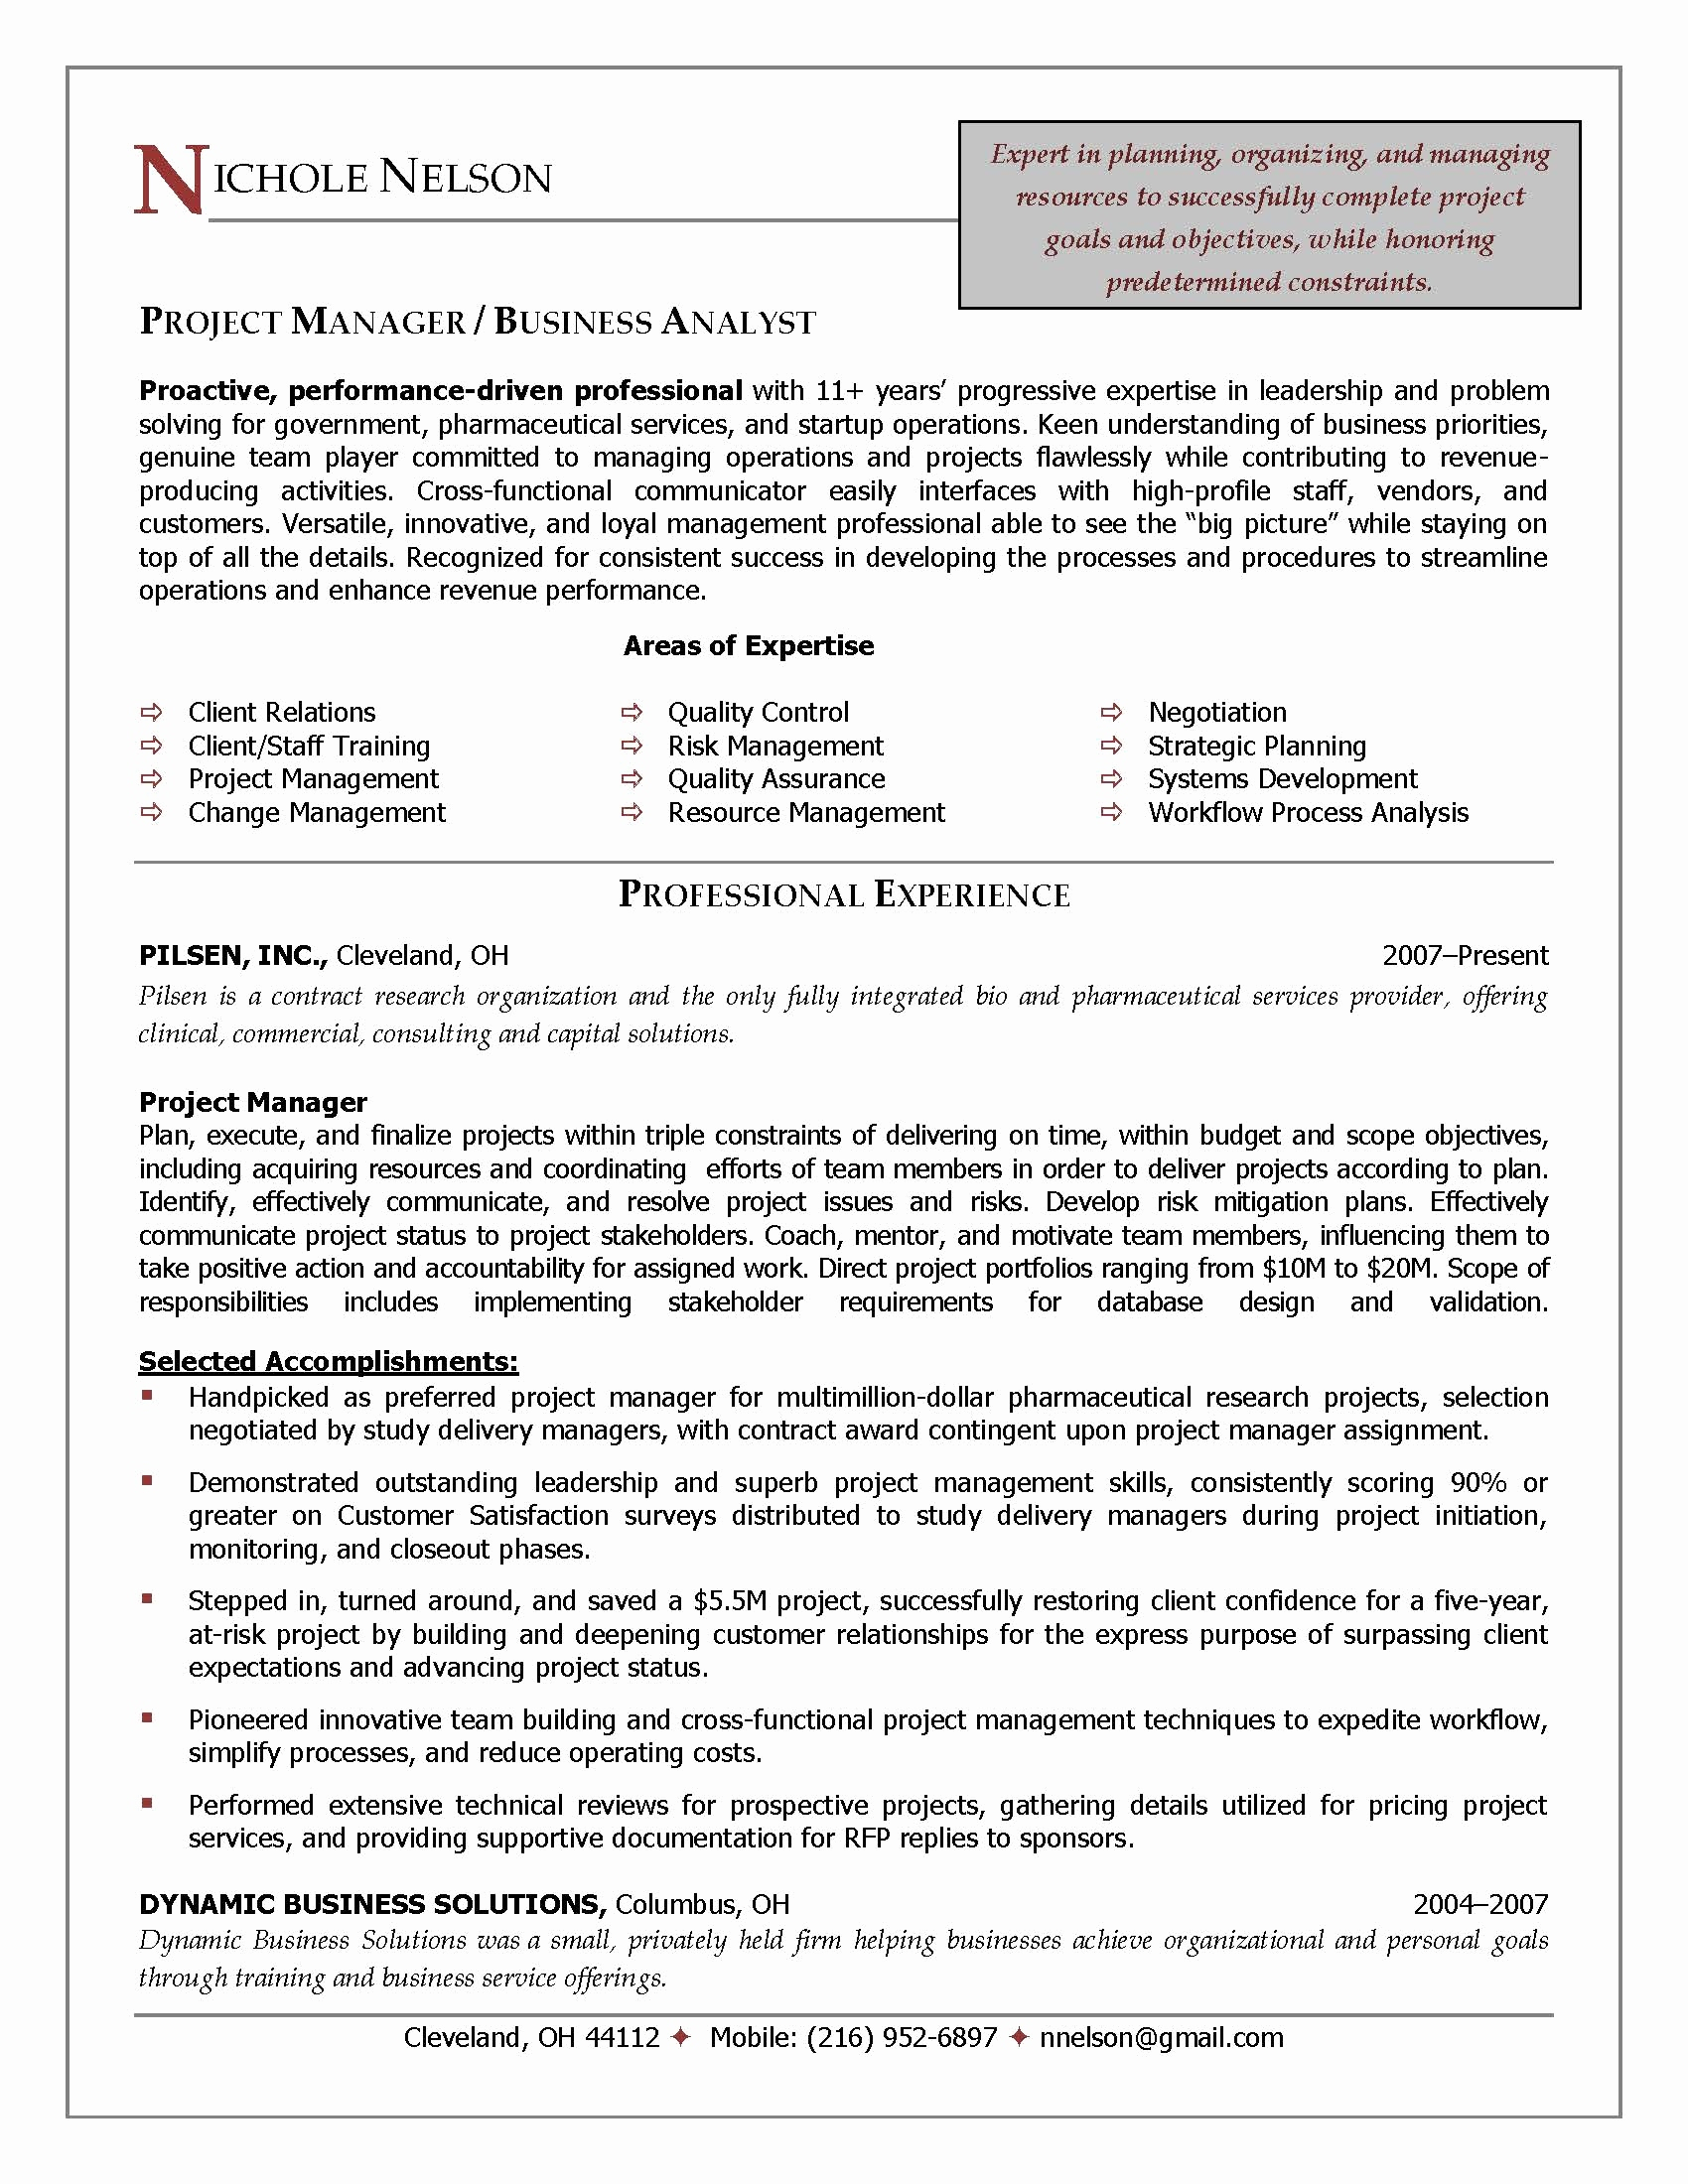 Finance Manager Resume Sample - Resume Template Pdf Download Fresh Resume Samples Program & Finance